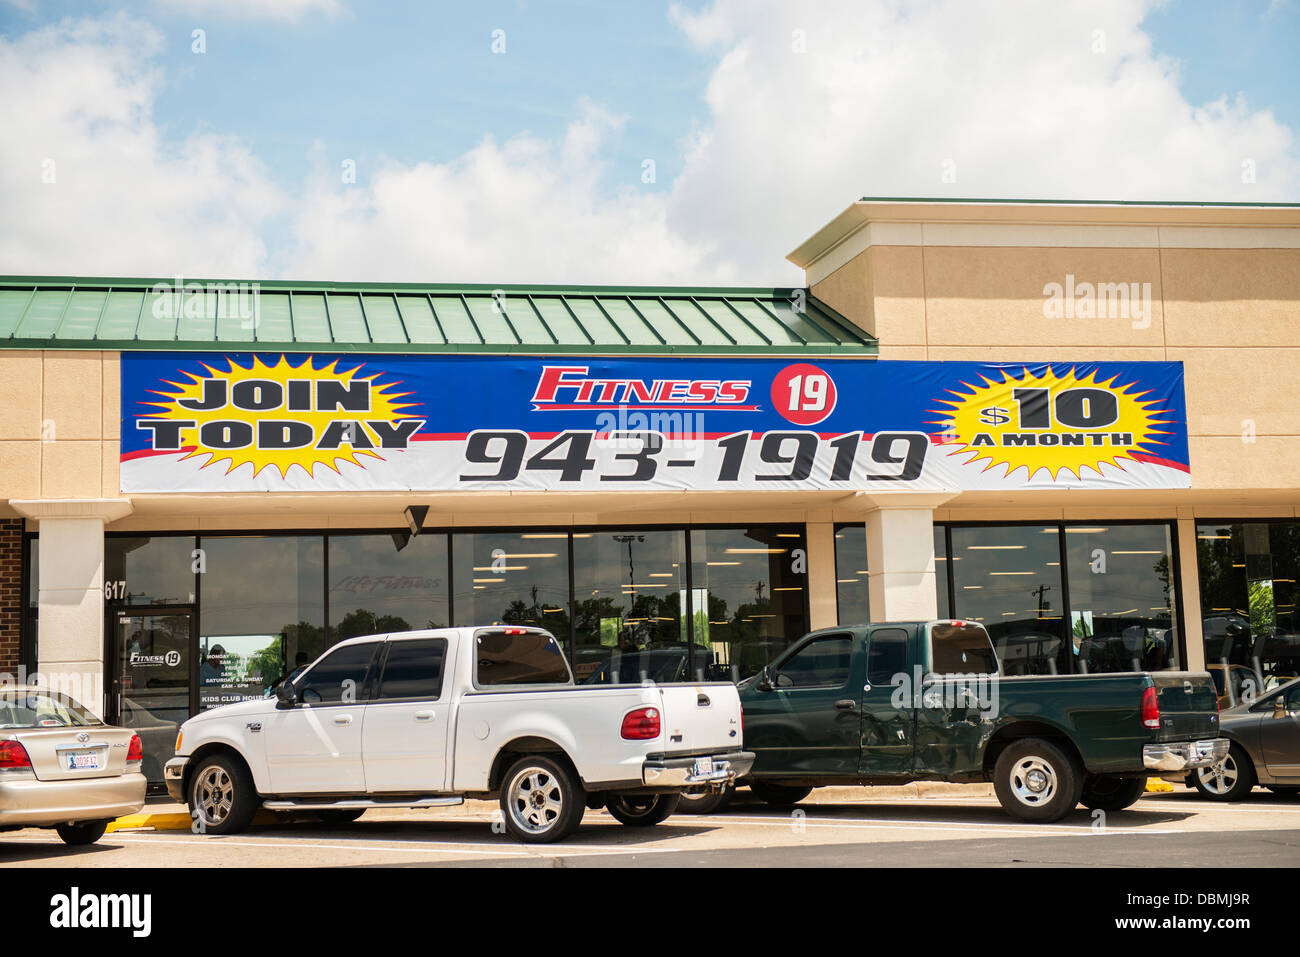 The exterior of a fitness center in a strip mall in Oklahoma City, Oklahoma, USA. - Stock Image